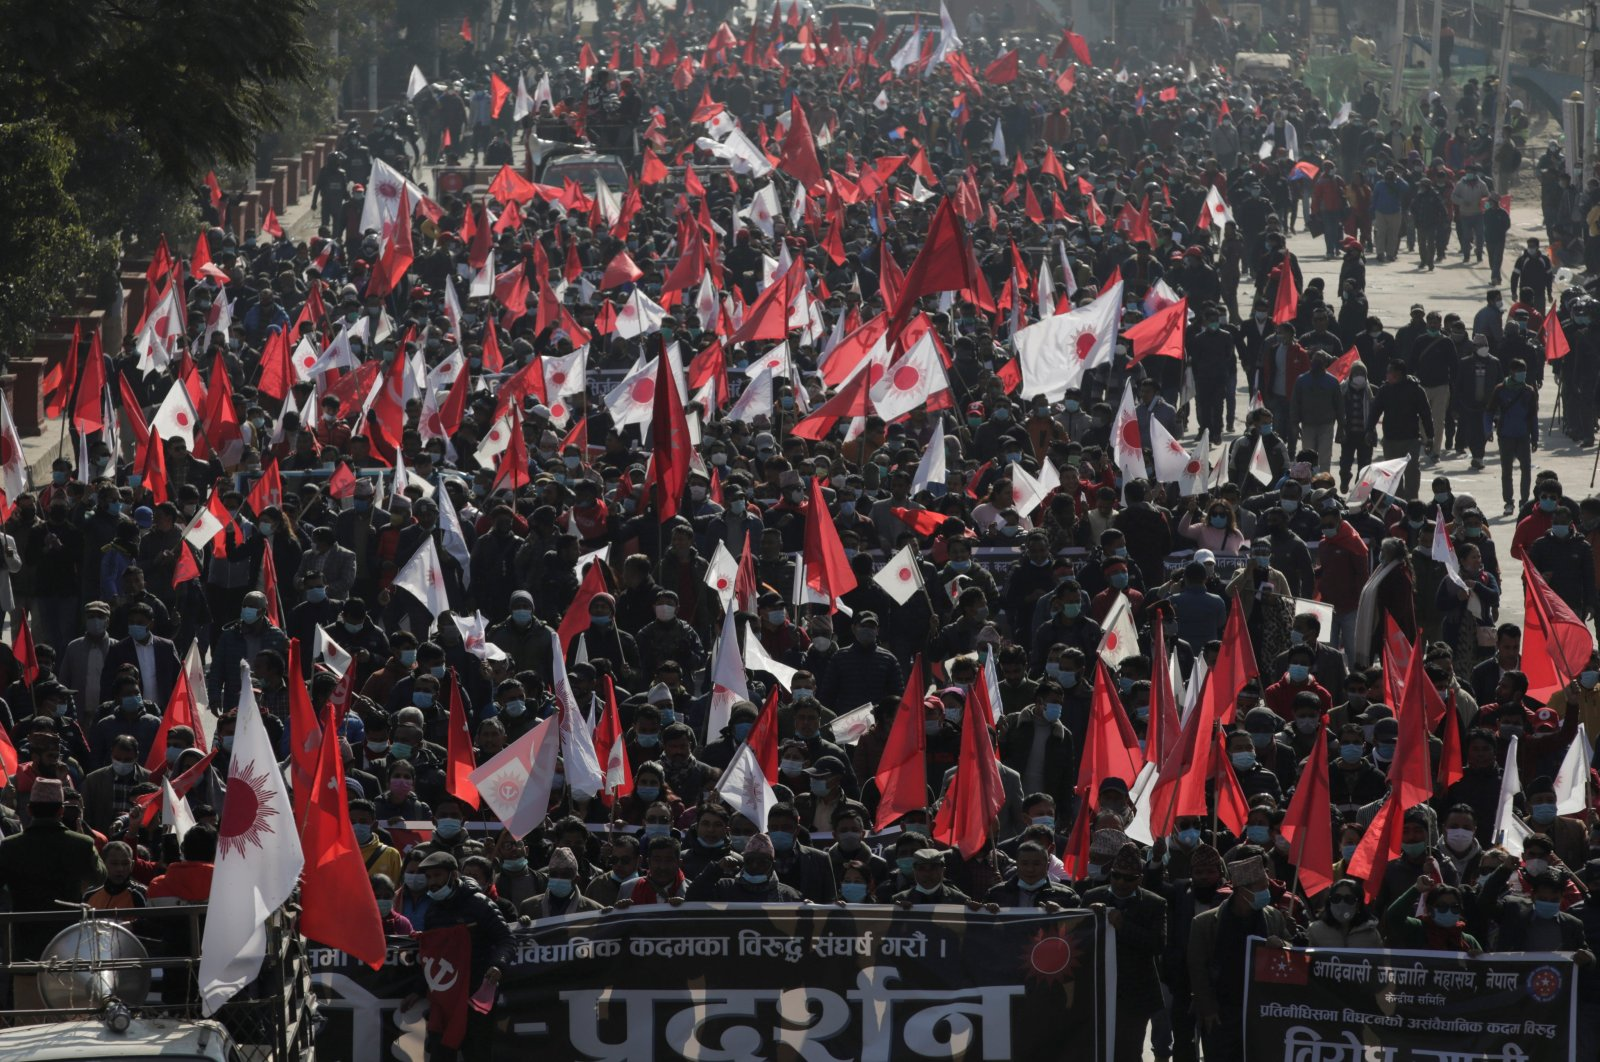 Protesters affiliated with a faction of the ruling Nepal Communist Party take part in a rally against the dissolution of parliament, in Kathmandu, Nepal, Dec. 29, 2020. (Reuters Photo)